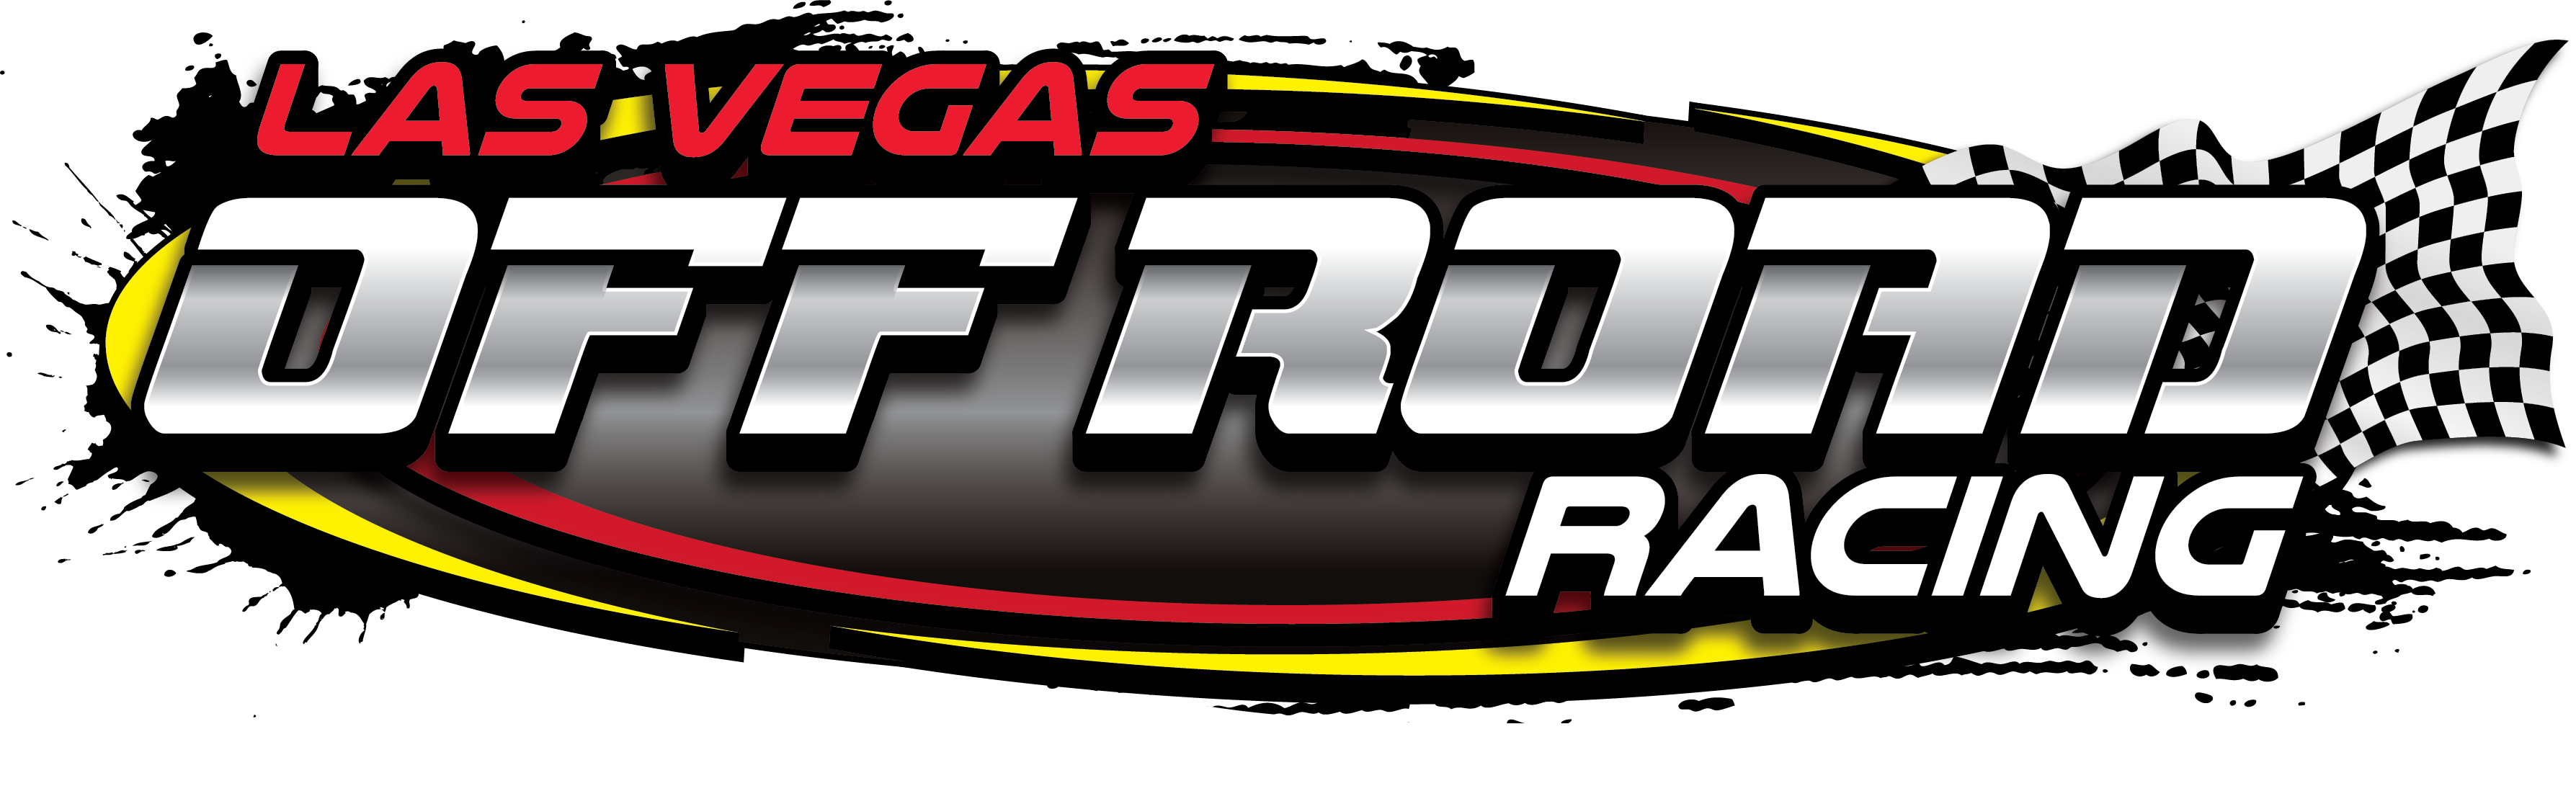 Las Vegas Off Road Racing Logo